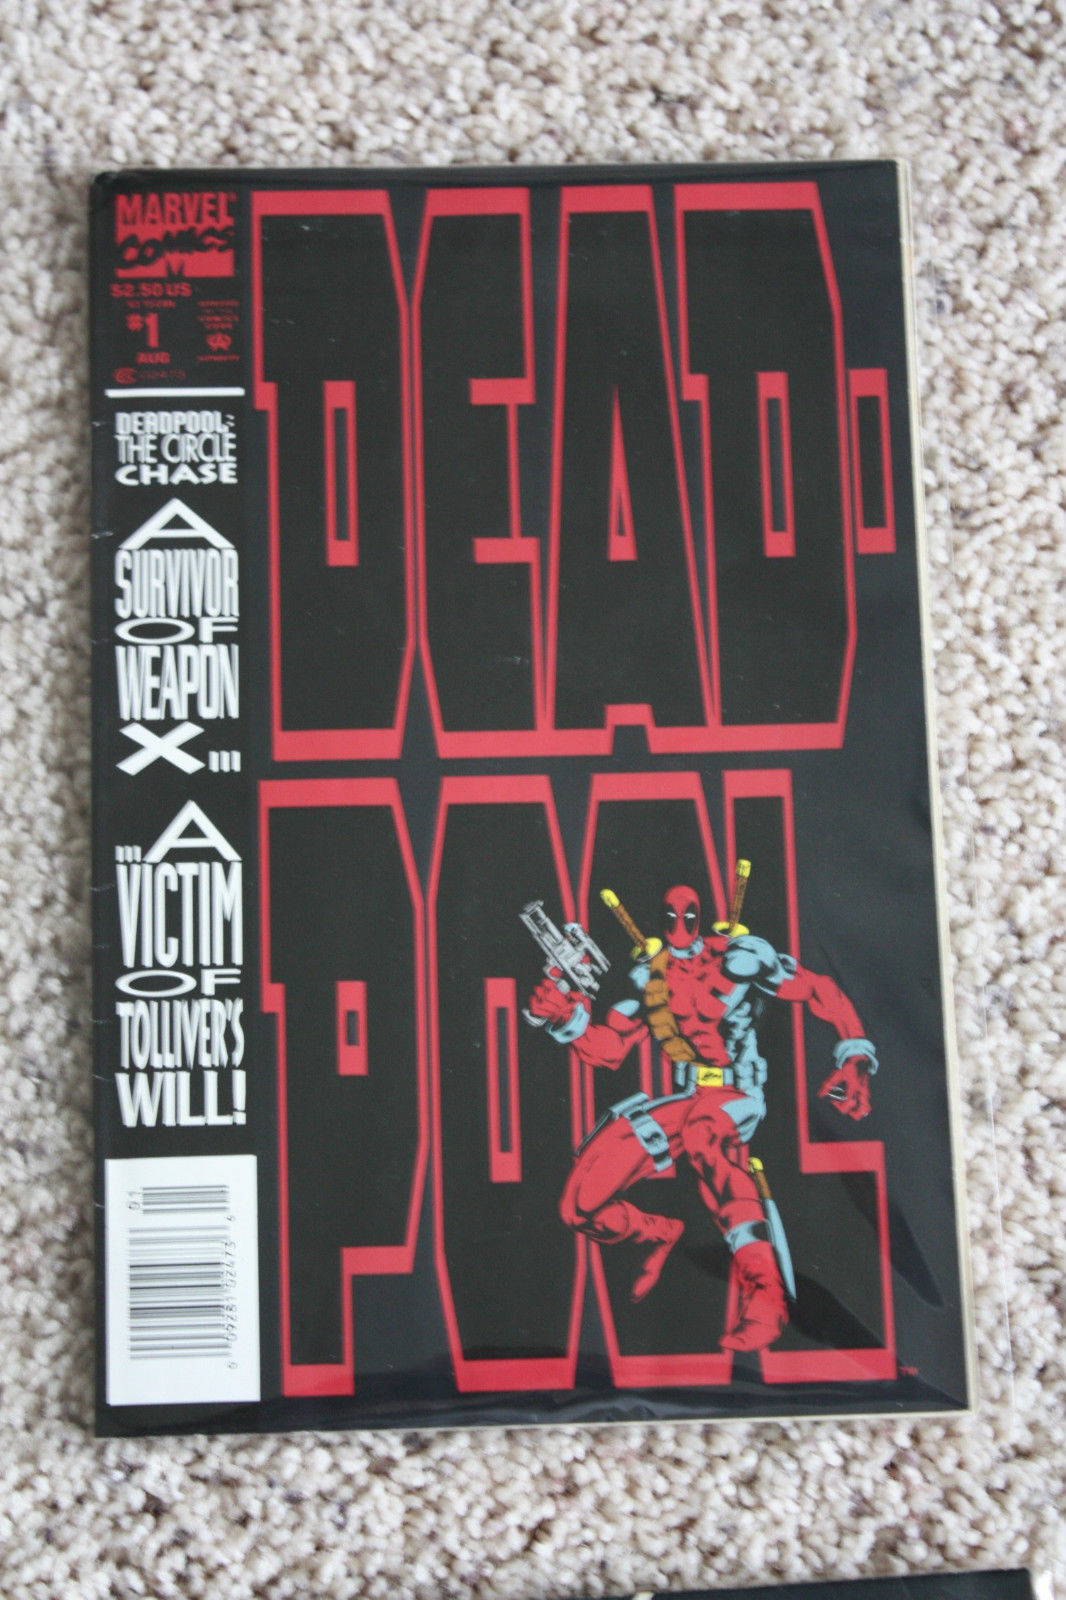 Lot Of 10, DEADPOOL CIRCLE CHASE #1, SQUEE, OSHI, & other Comic Books NO RESERVE